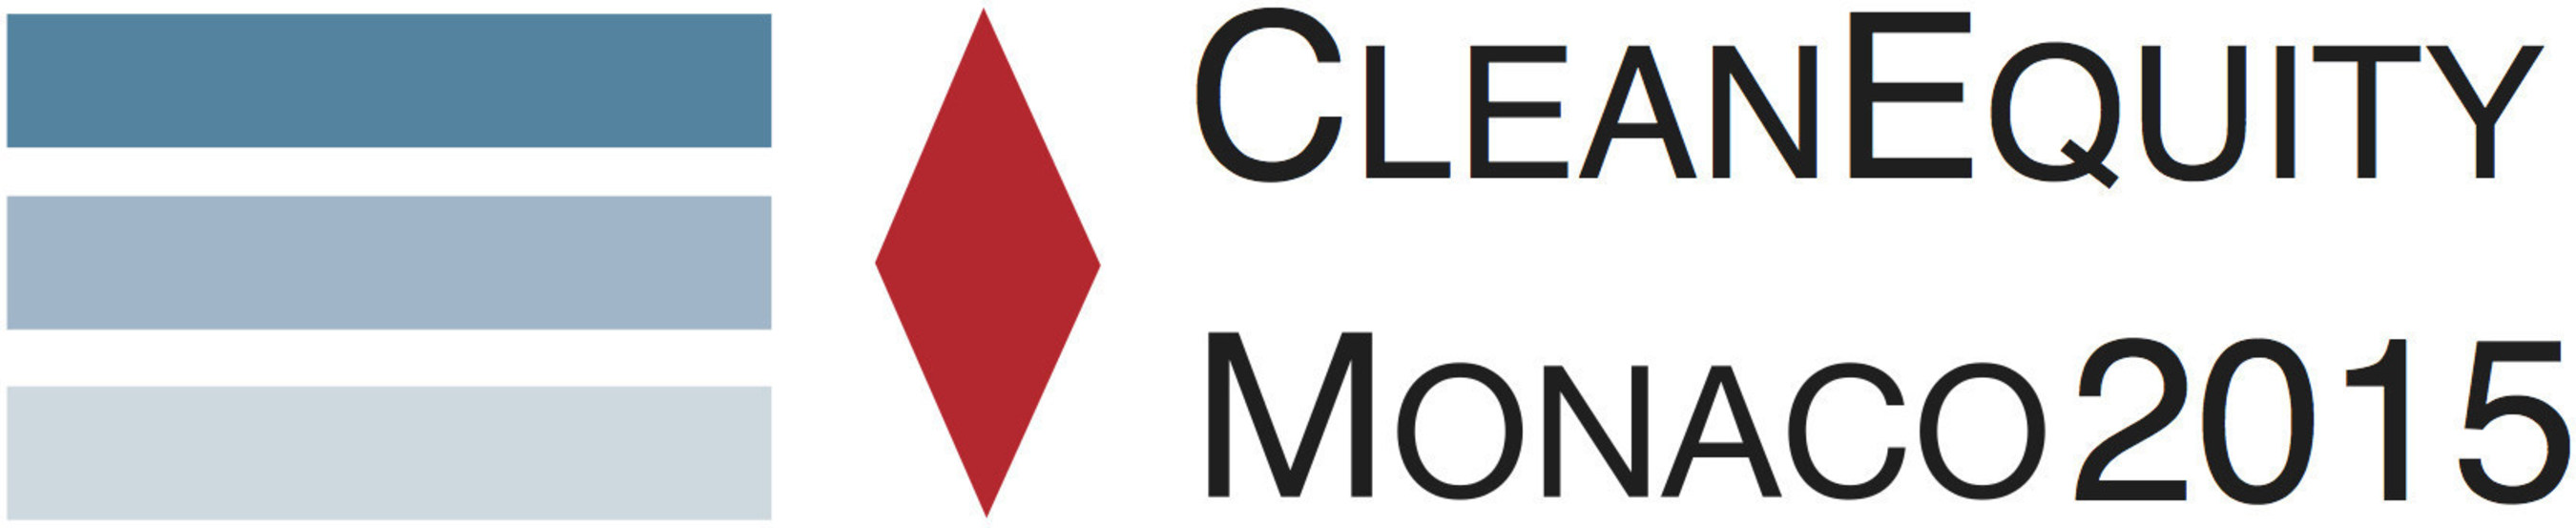 TESSONICS INC. Selected to Present at CleanEquity Monaco 2015